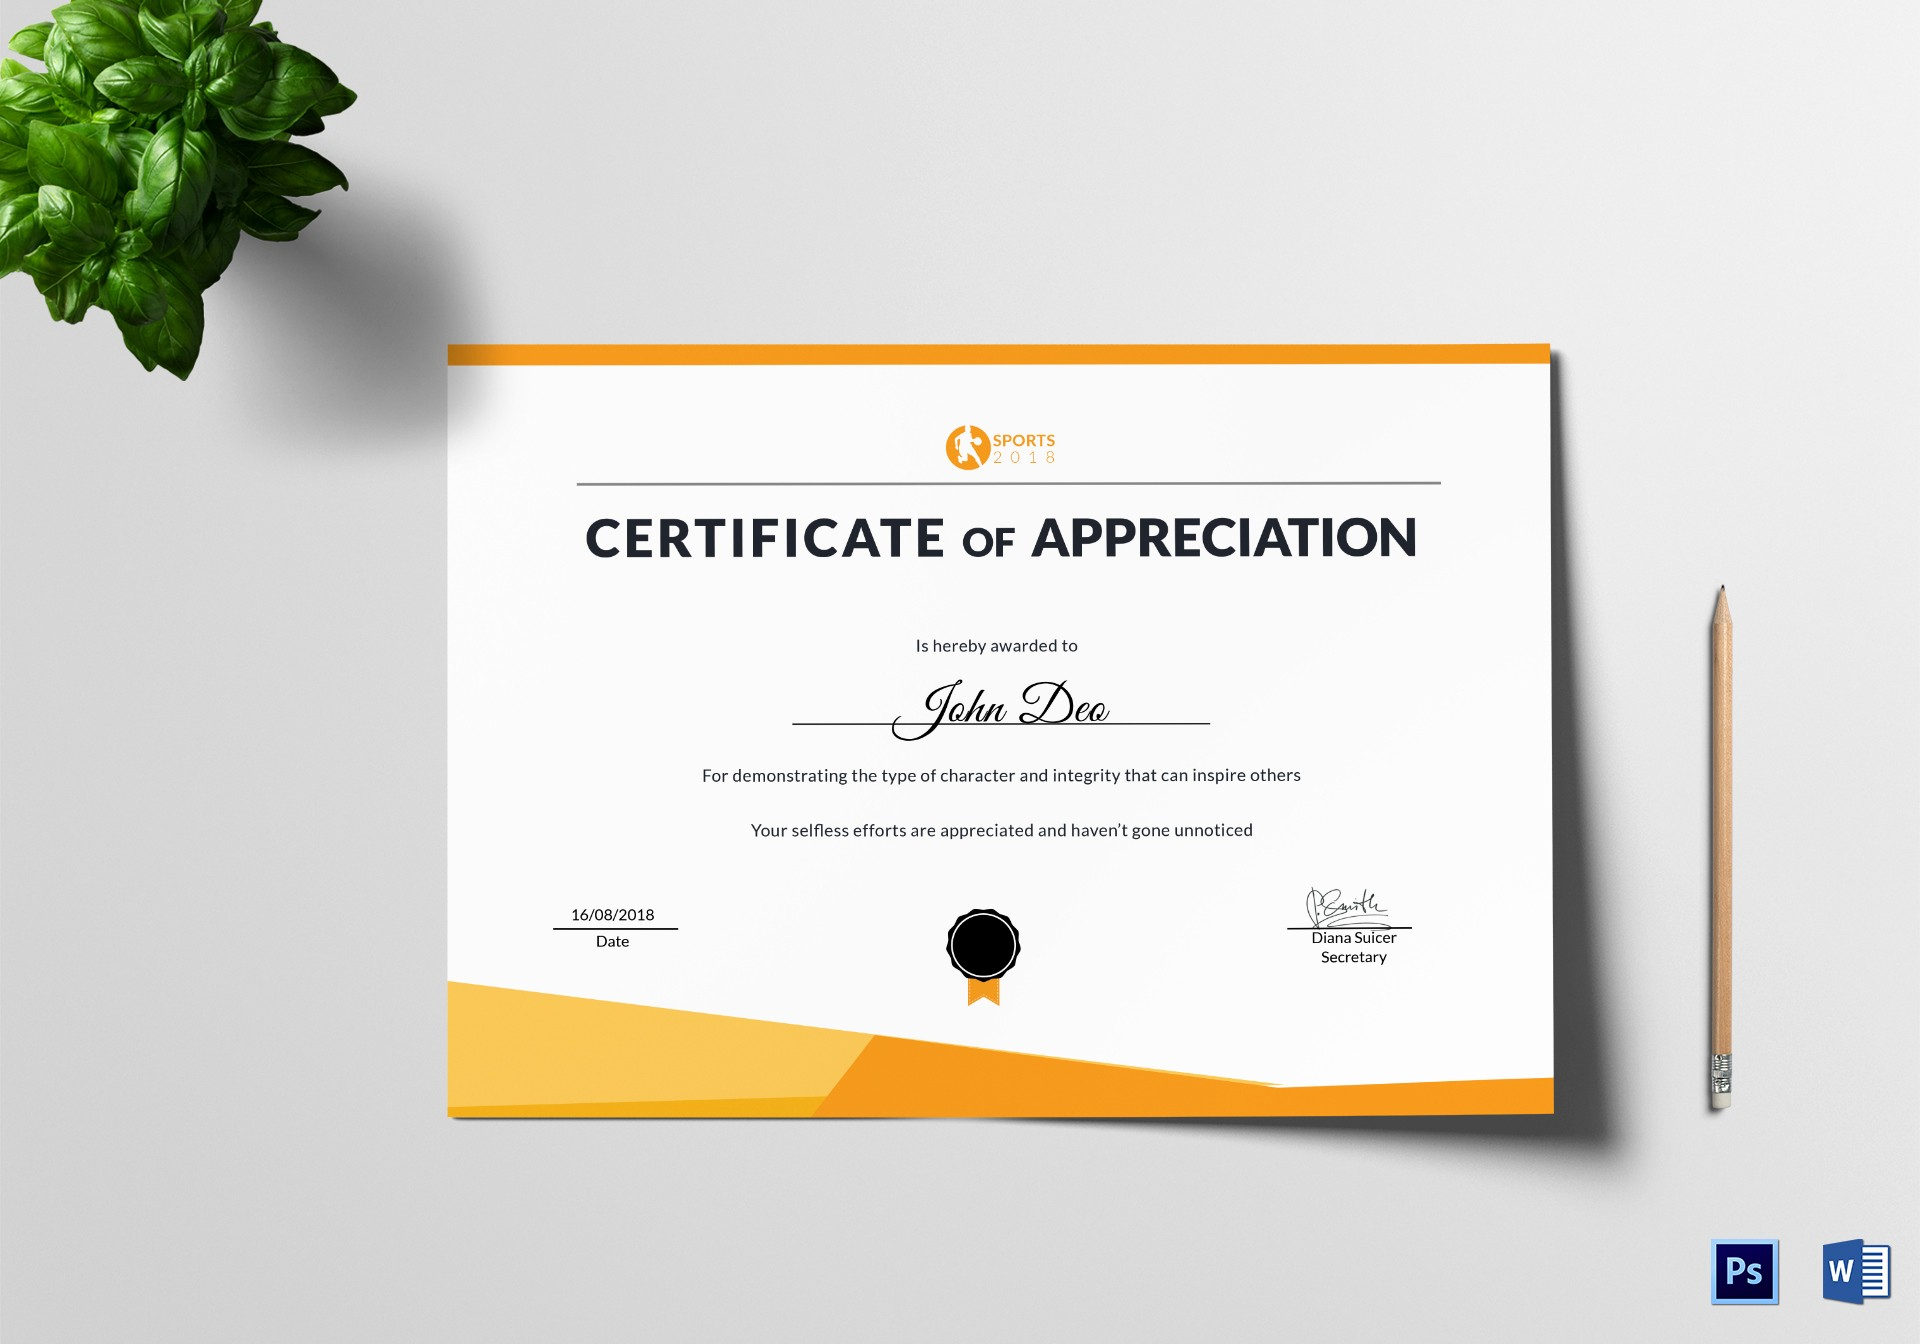 Appreciation Certificate Templates for Word Unique Sportsmanship Appreciation Certificate Design Template In